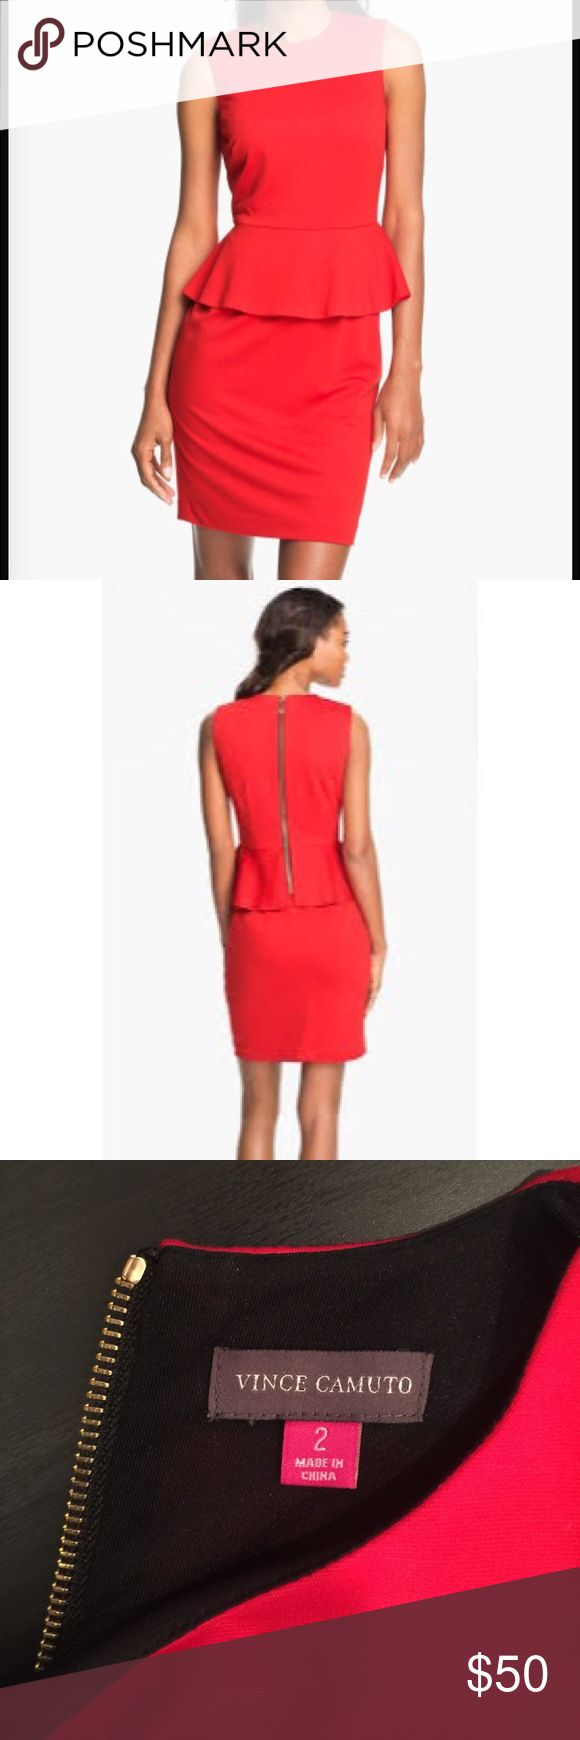 Vince Camuto Red Peplum Dress, Size 2 Vince Camuto Red Peplum Dress, Size 2 (Small), Perfect condition Vince Camuto Dresses Midi